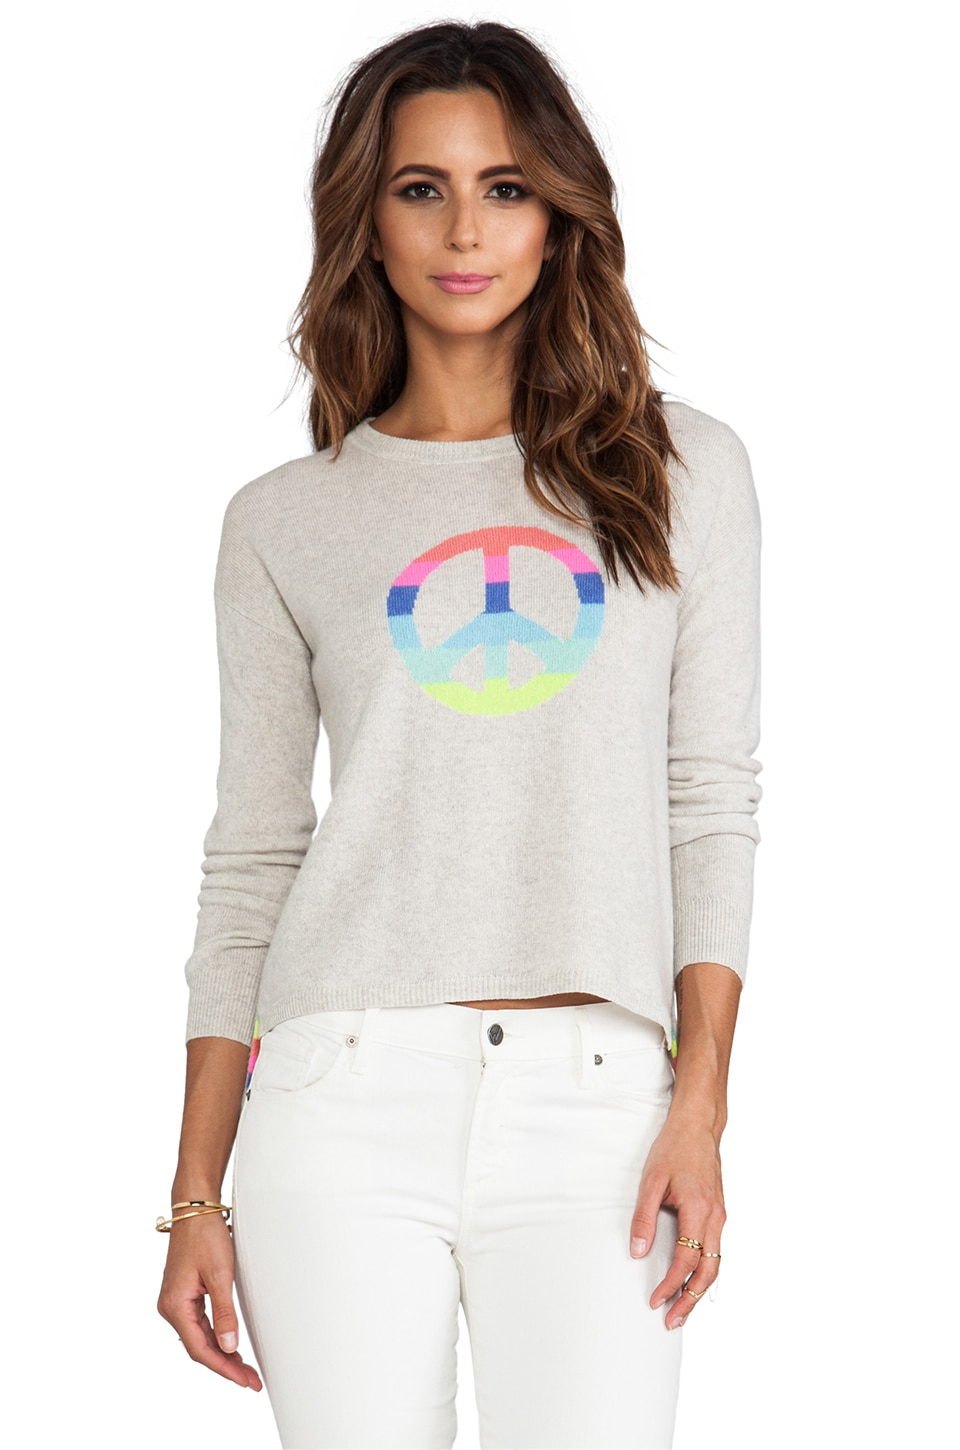 Autumn Cashmere Hi Lo Rainbow Peace Pullover in Hemp Multi